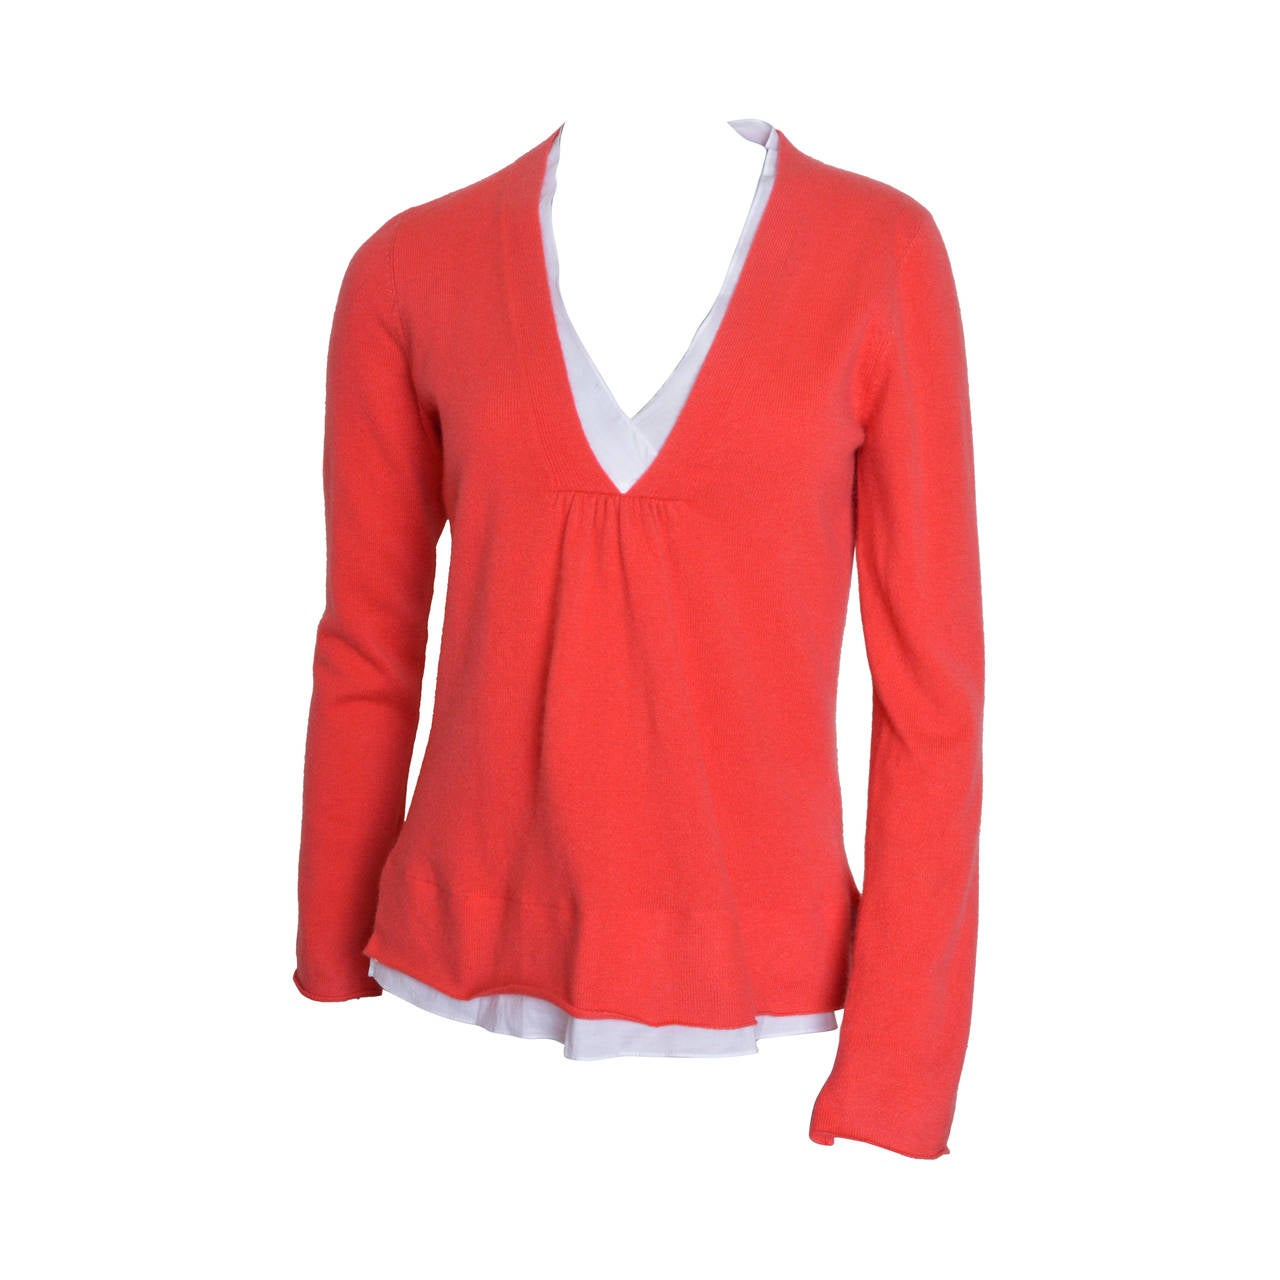 Brunello Cucinelli Orange Cashmere Sweater For Sale at 1stdibs